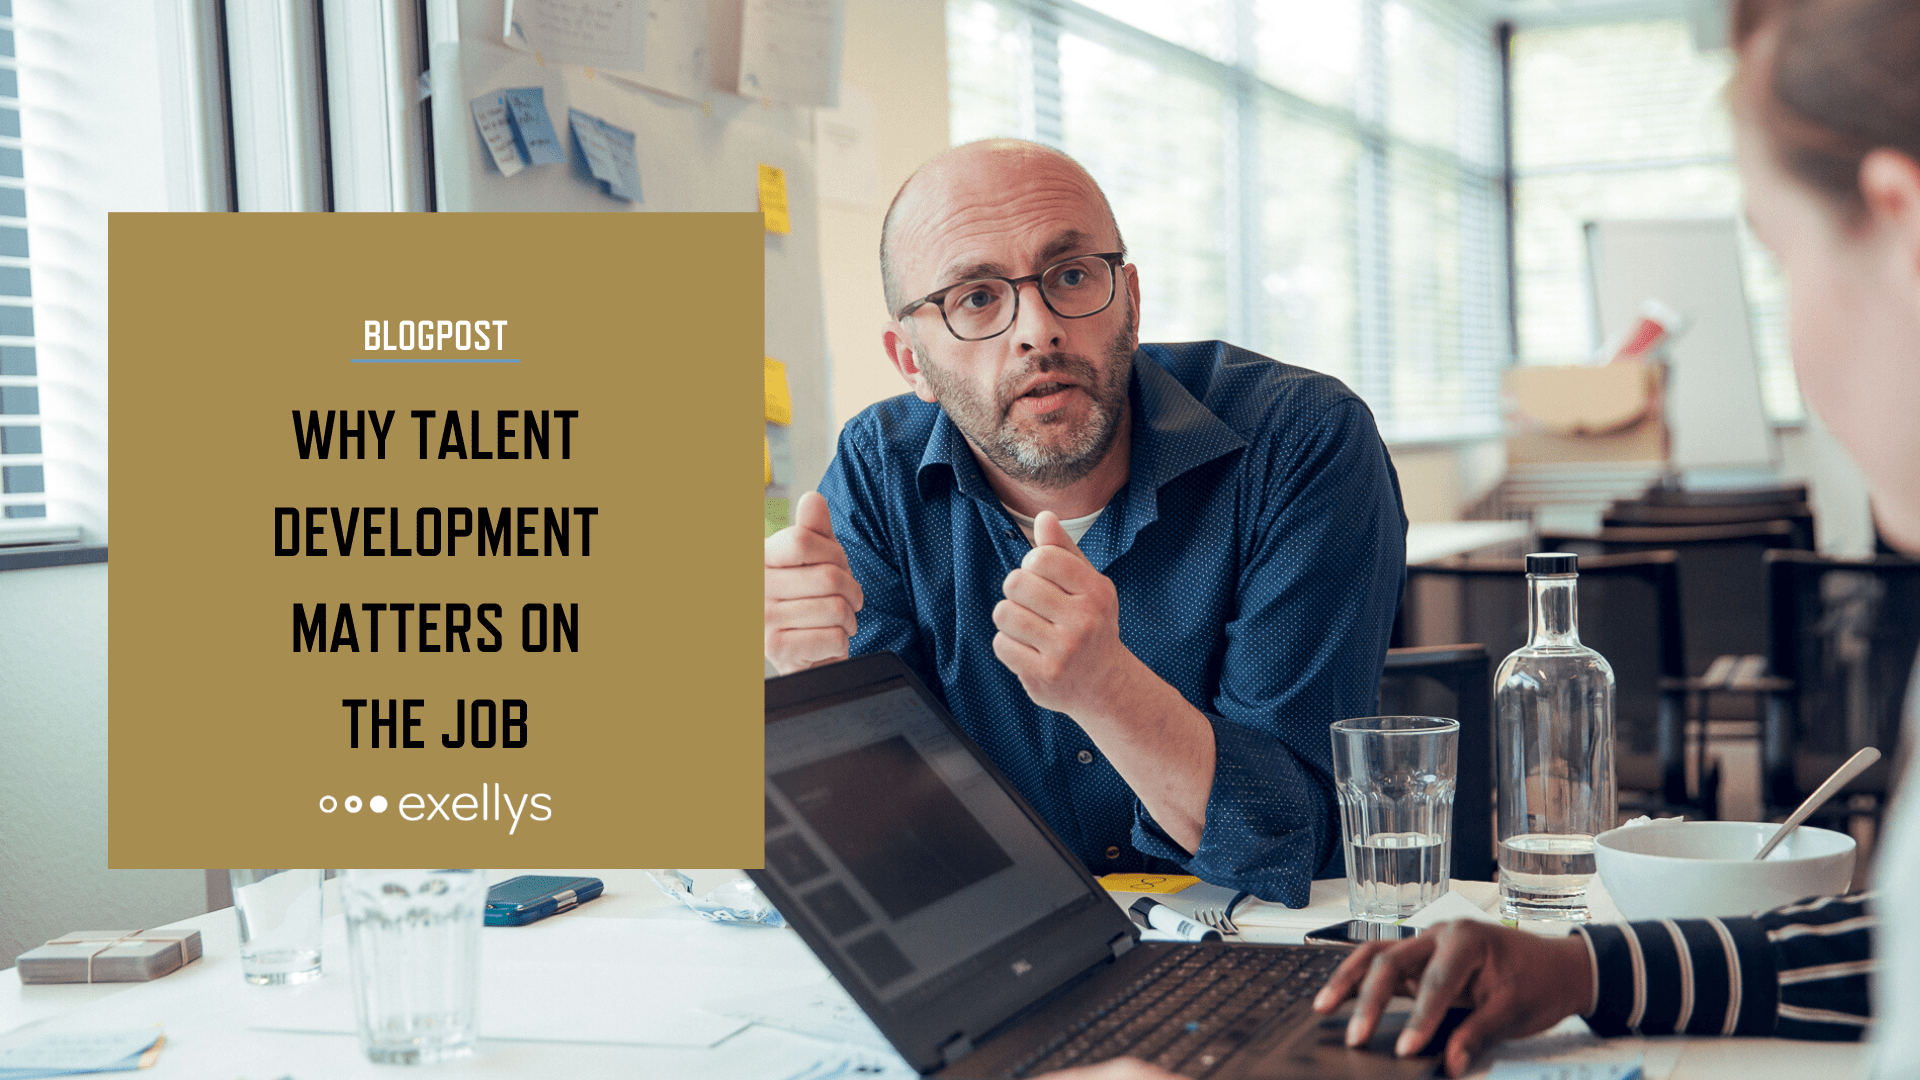 Why talent development matters on the job - Social share image